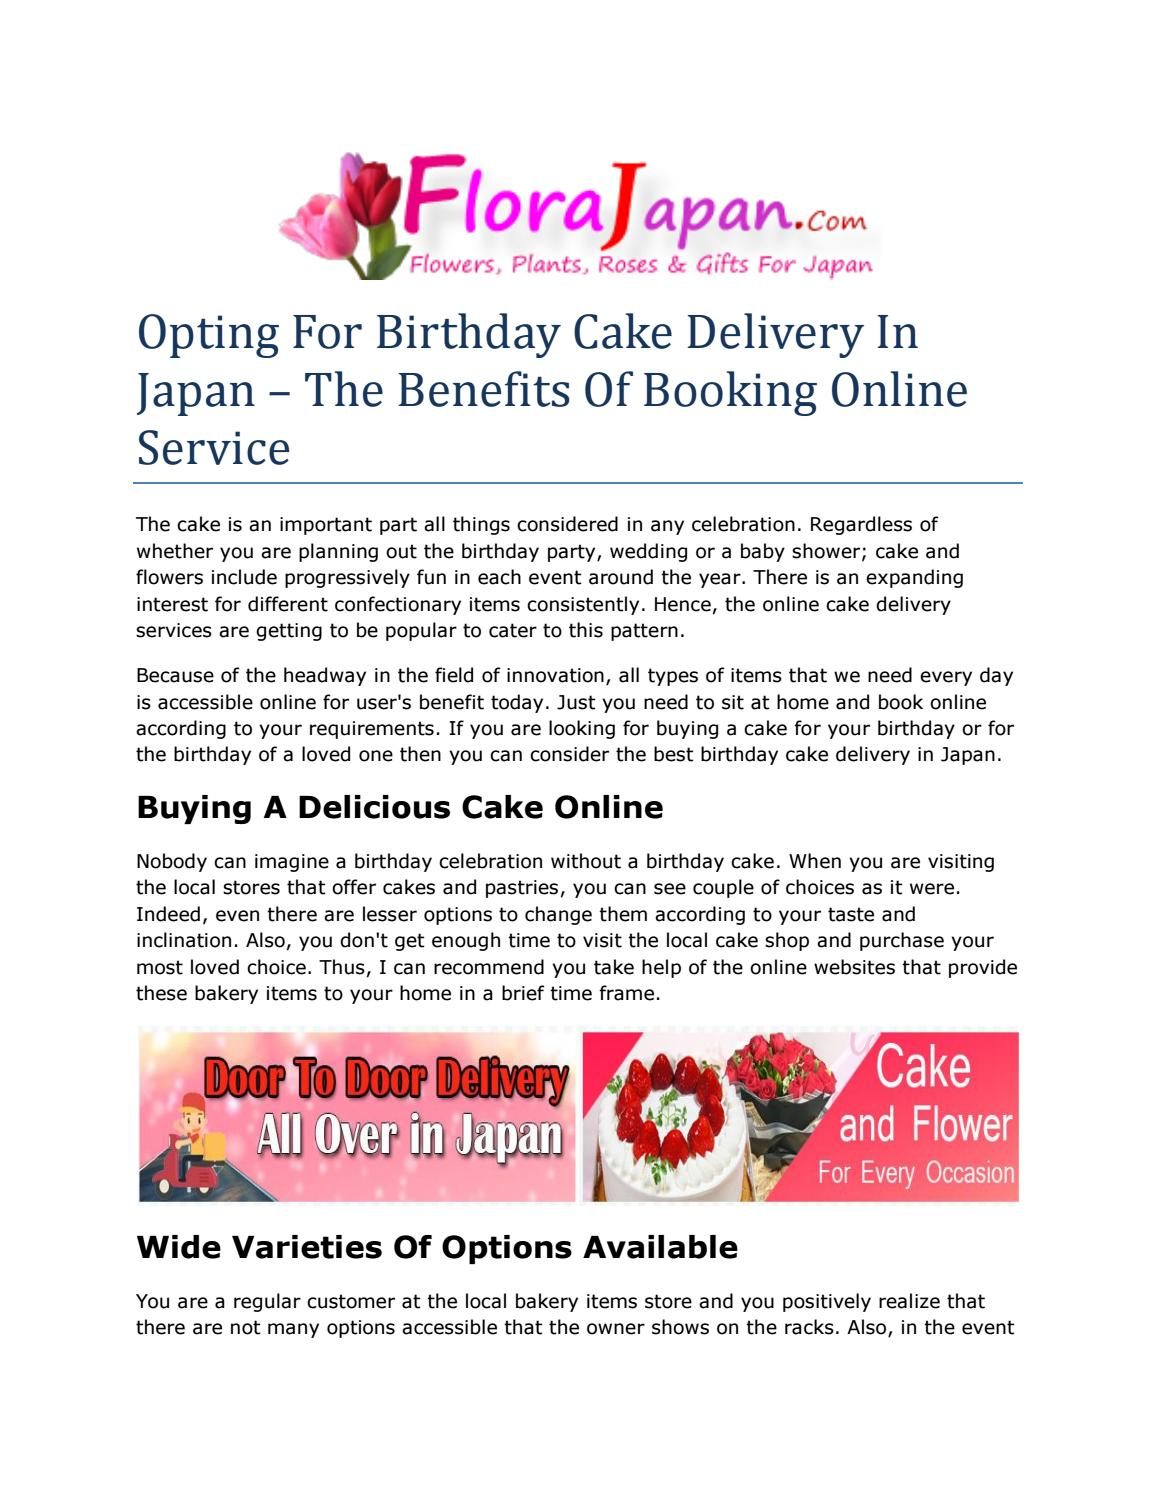 Miraculous Opting For Birthday Cake Delivery In Japan The Benefits Of Funny Birthday Cards Online Barepcheapnameinfo